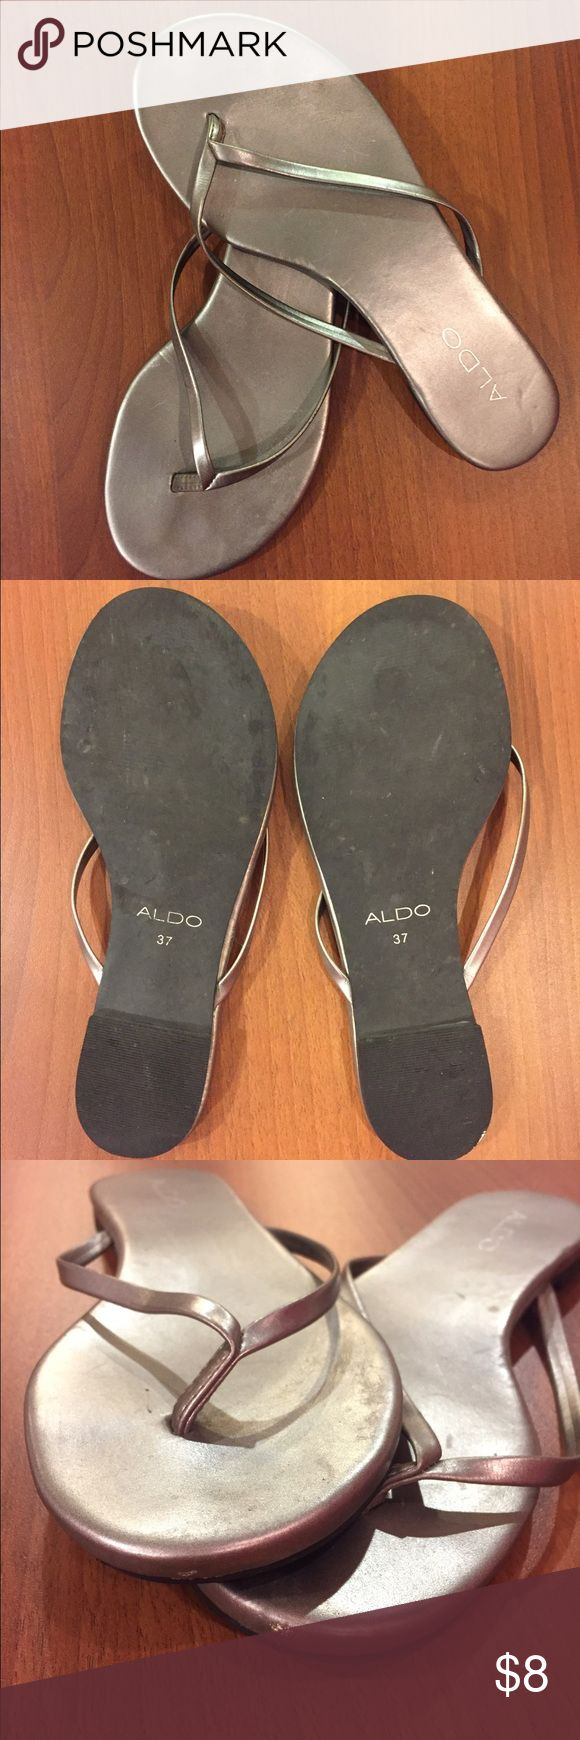 Aldo silver flip flops Aldo silver/grey flip-flops in good condition. Wore a handful of times. Minor scratches shown in photos. Size 7 Aldo Shoes